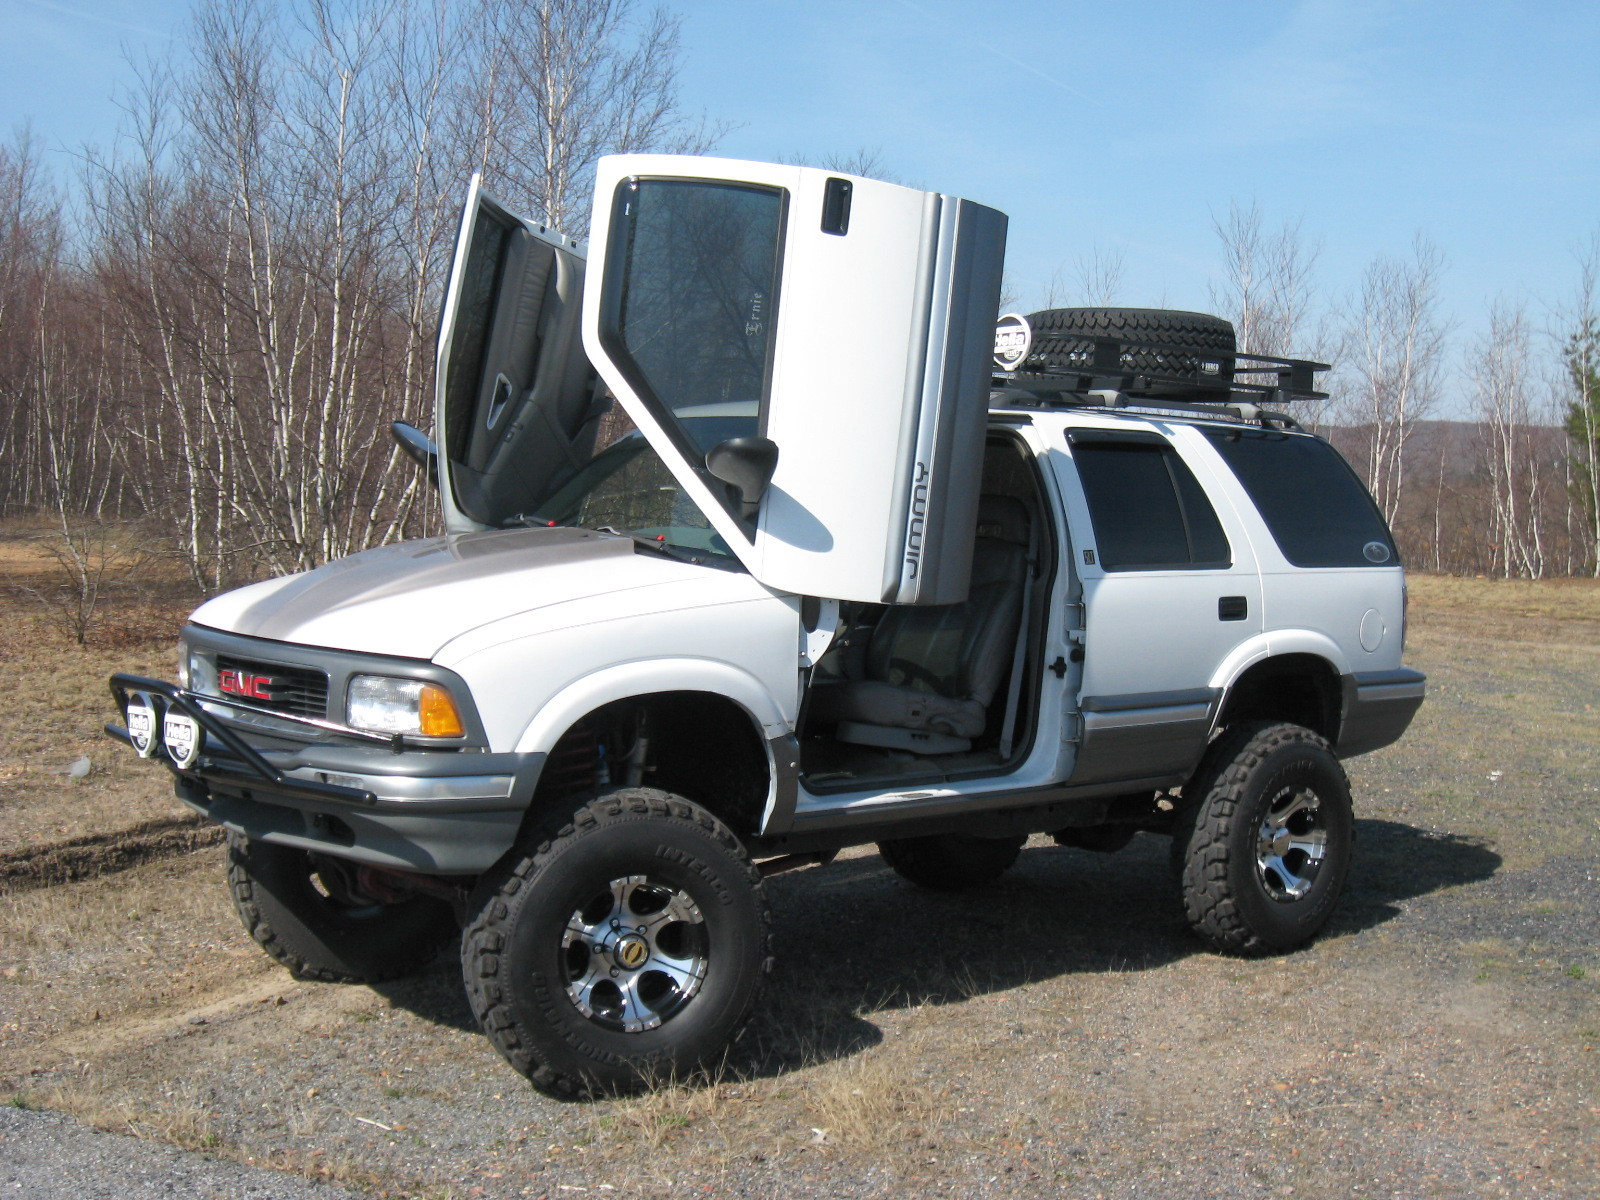 gmc jimmy images